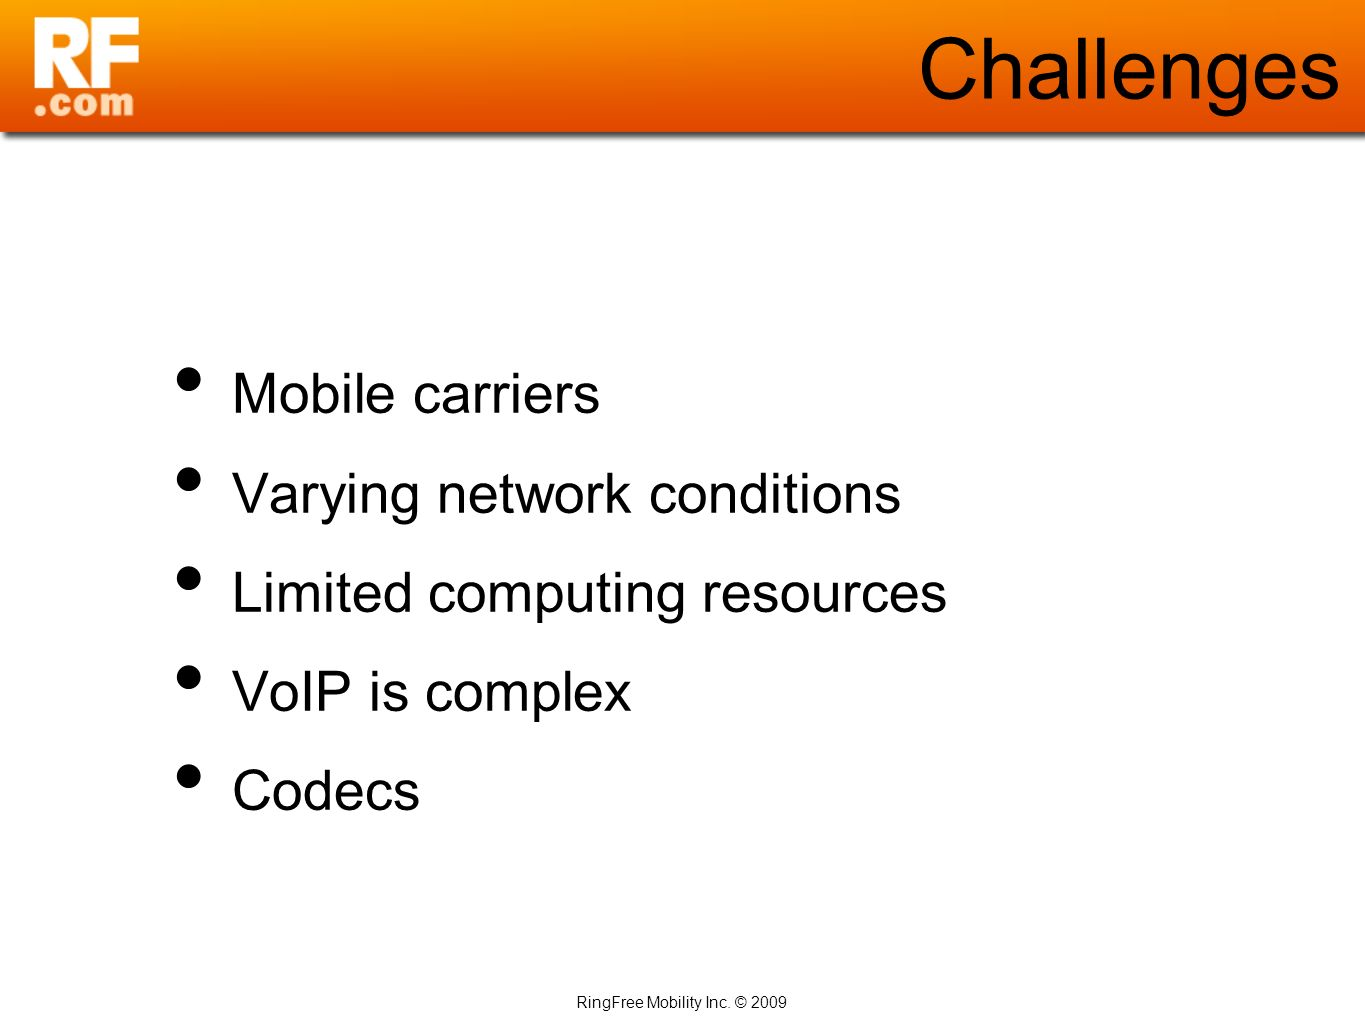 RingFree Mobility Inc. © 2009 Challenges Mobile carriers Varying network conditions Limited computing resources VoIP is complex Codecs